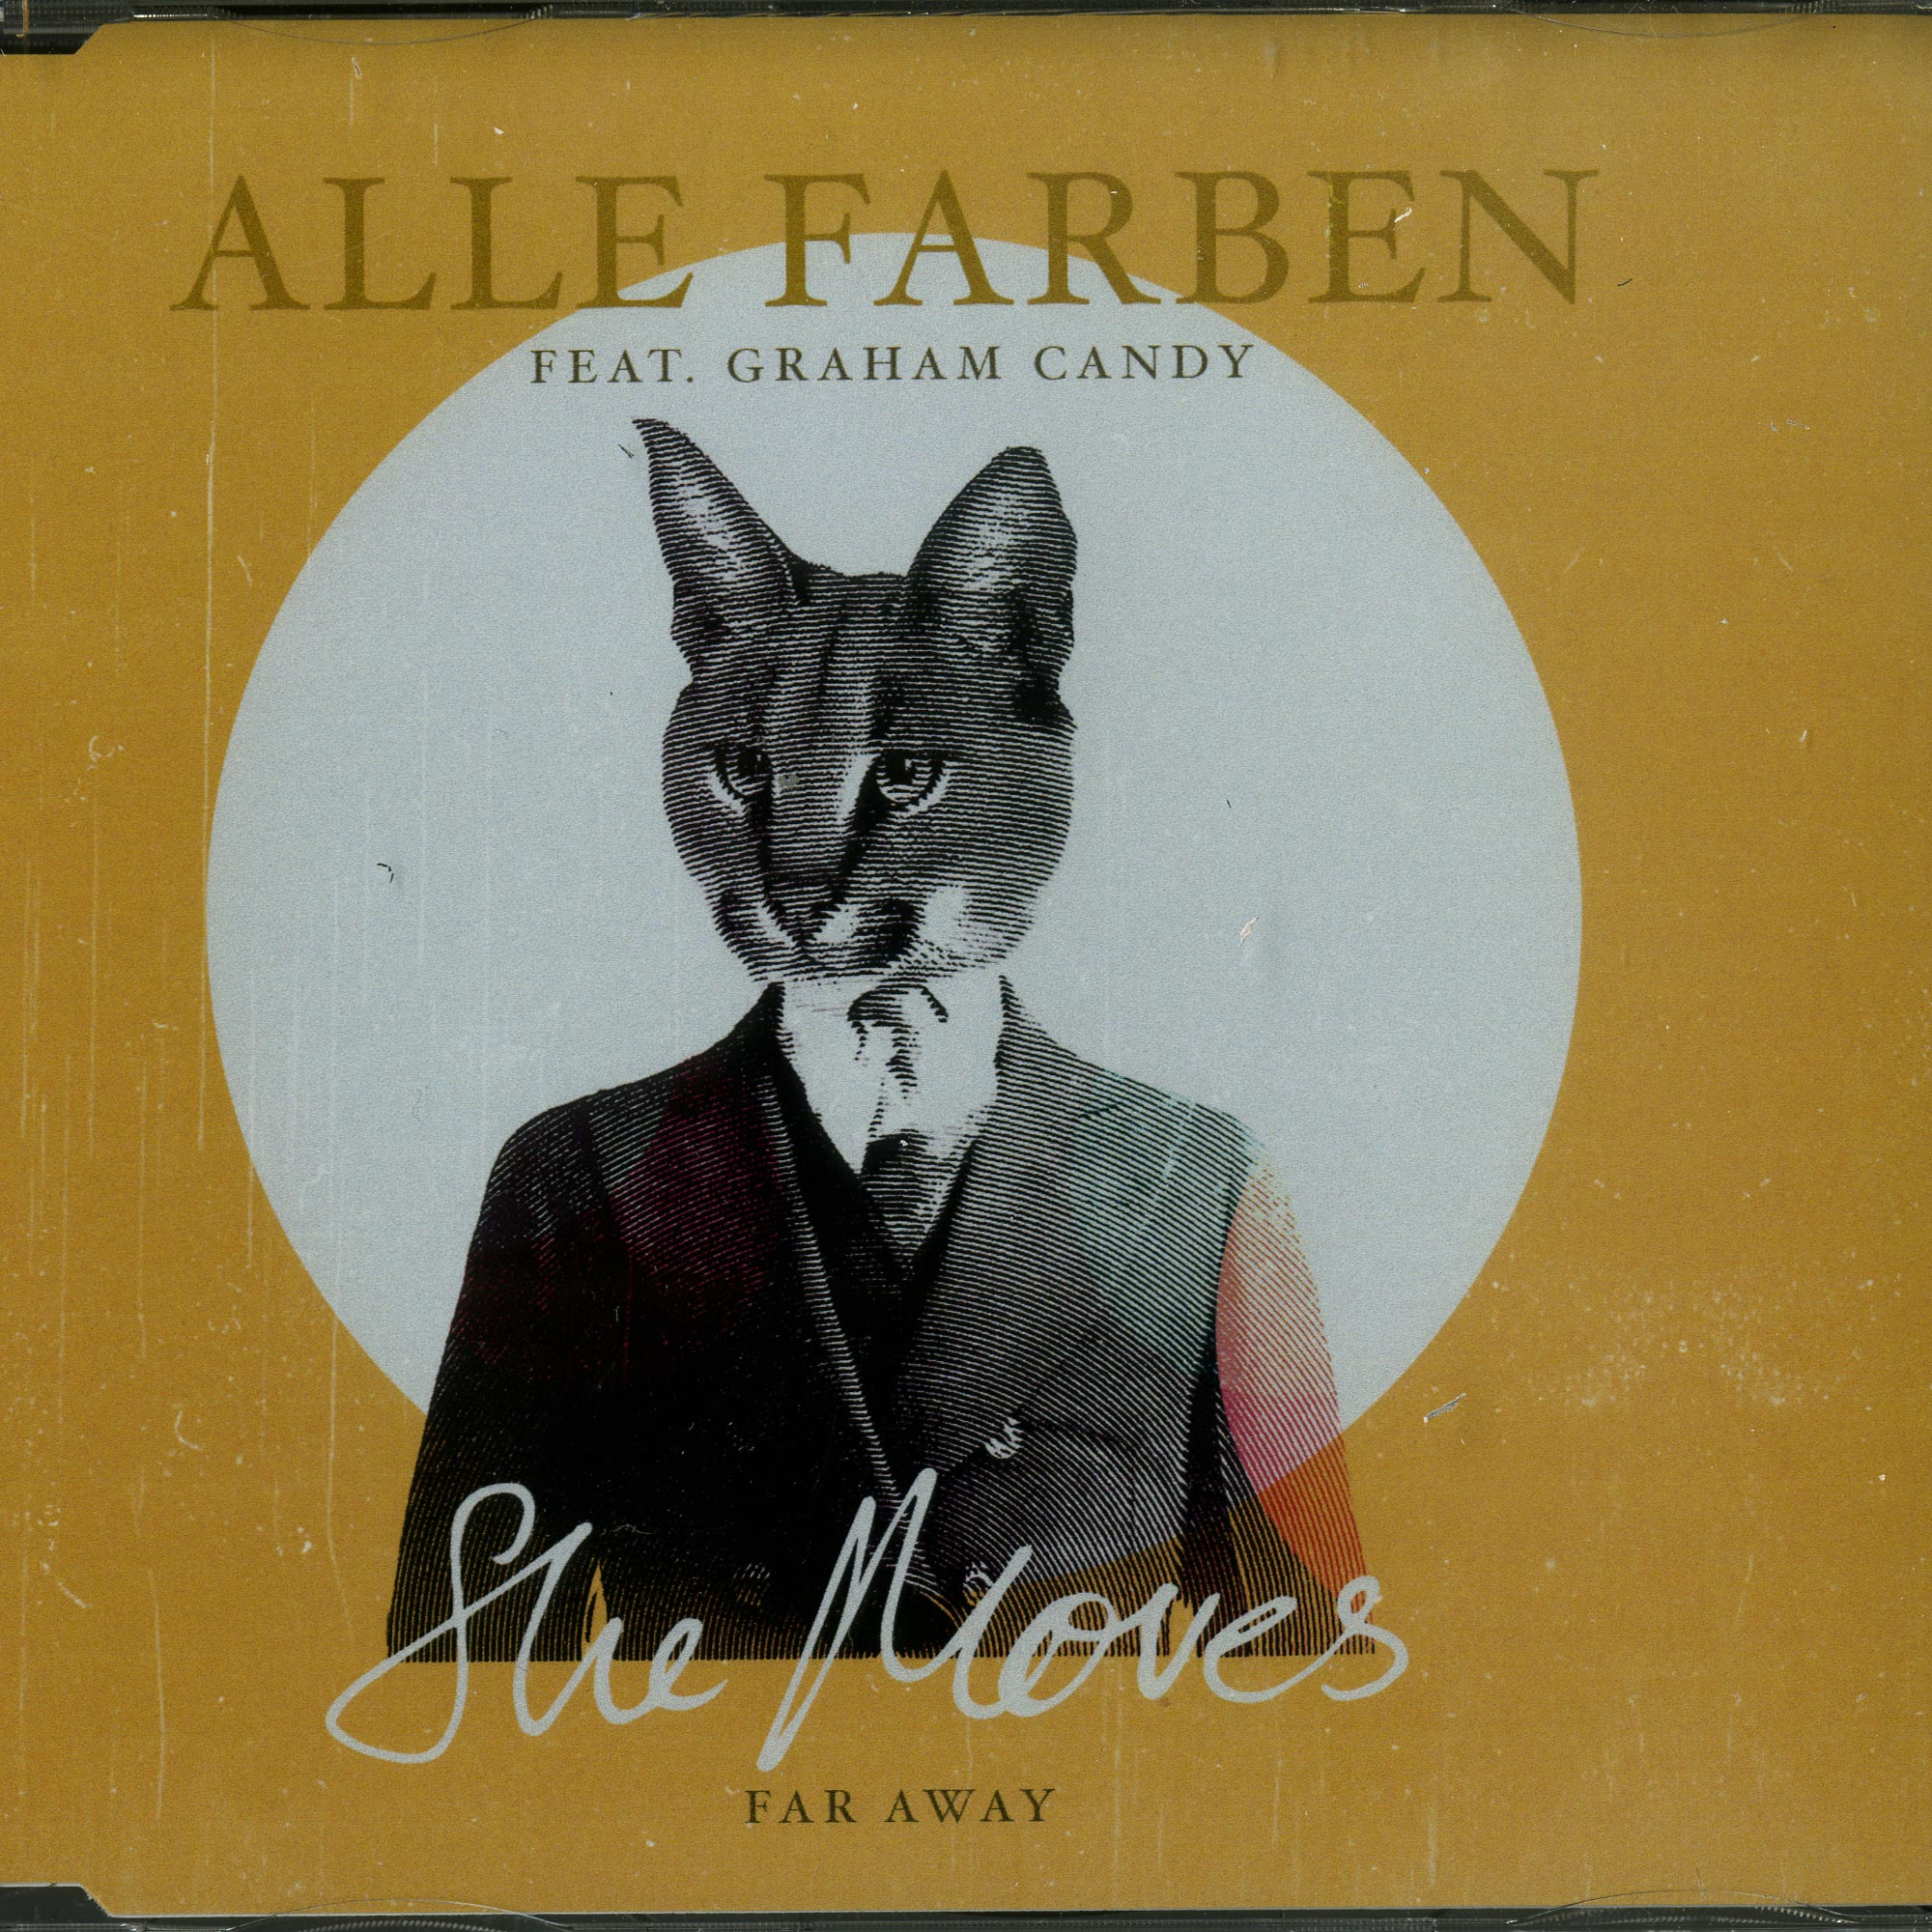 Alle Farben feat. Graham Candy - SHE MOVES